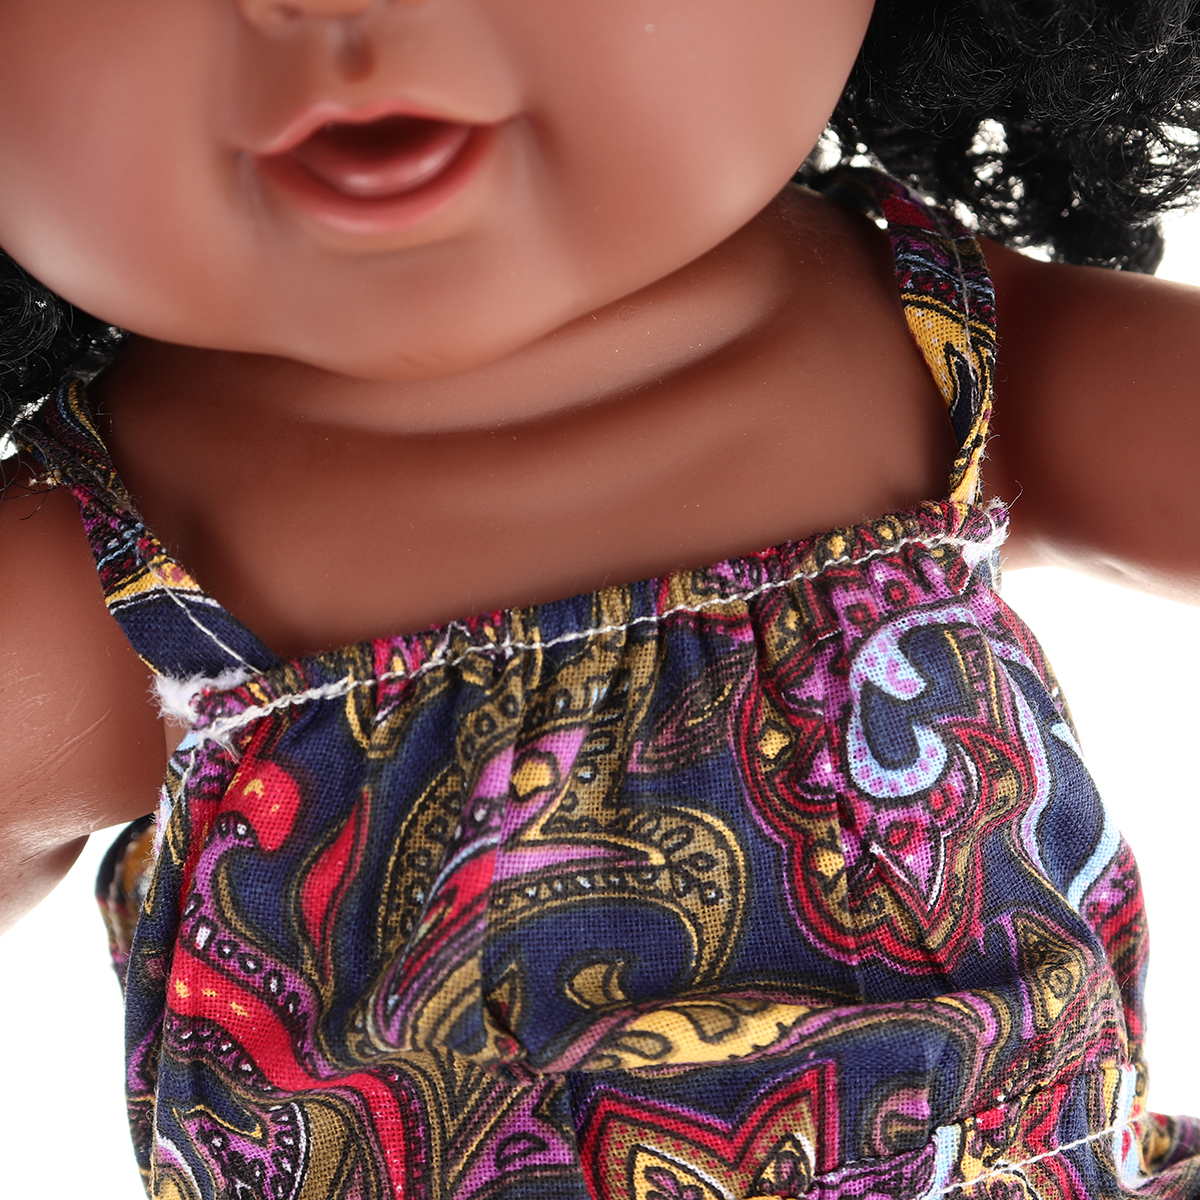 12Inch Soft Silicone Vinyl PVC Black Baby Fashion Play Doll Rotate 360° African Girl Perfect Reborn Doll Toy for Birthday Gift - Photo: 8